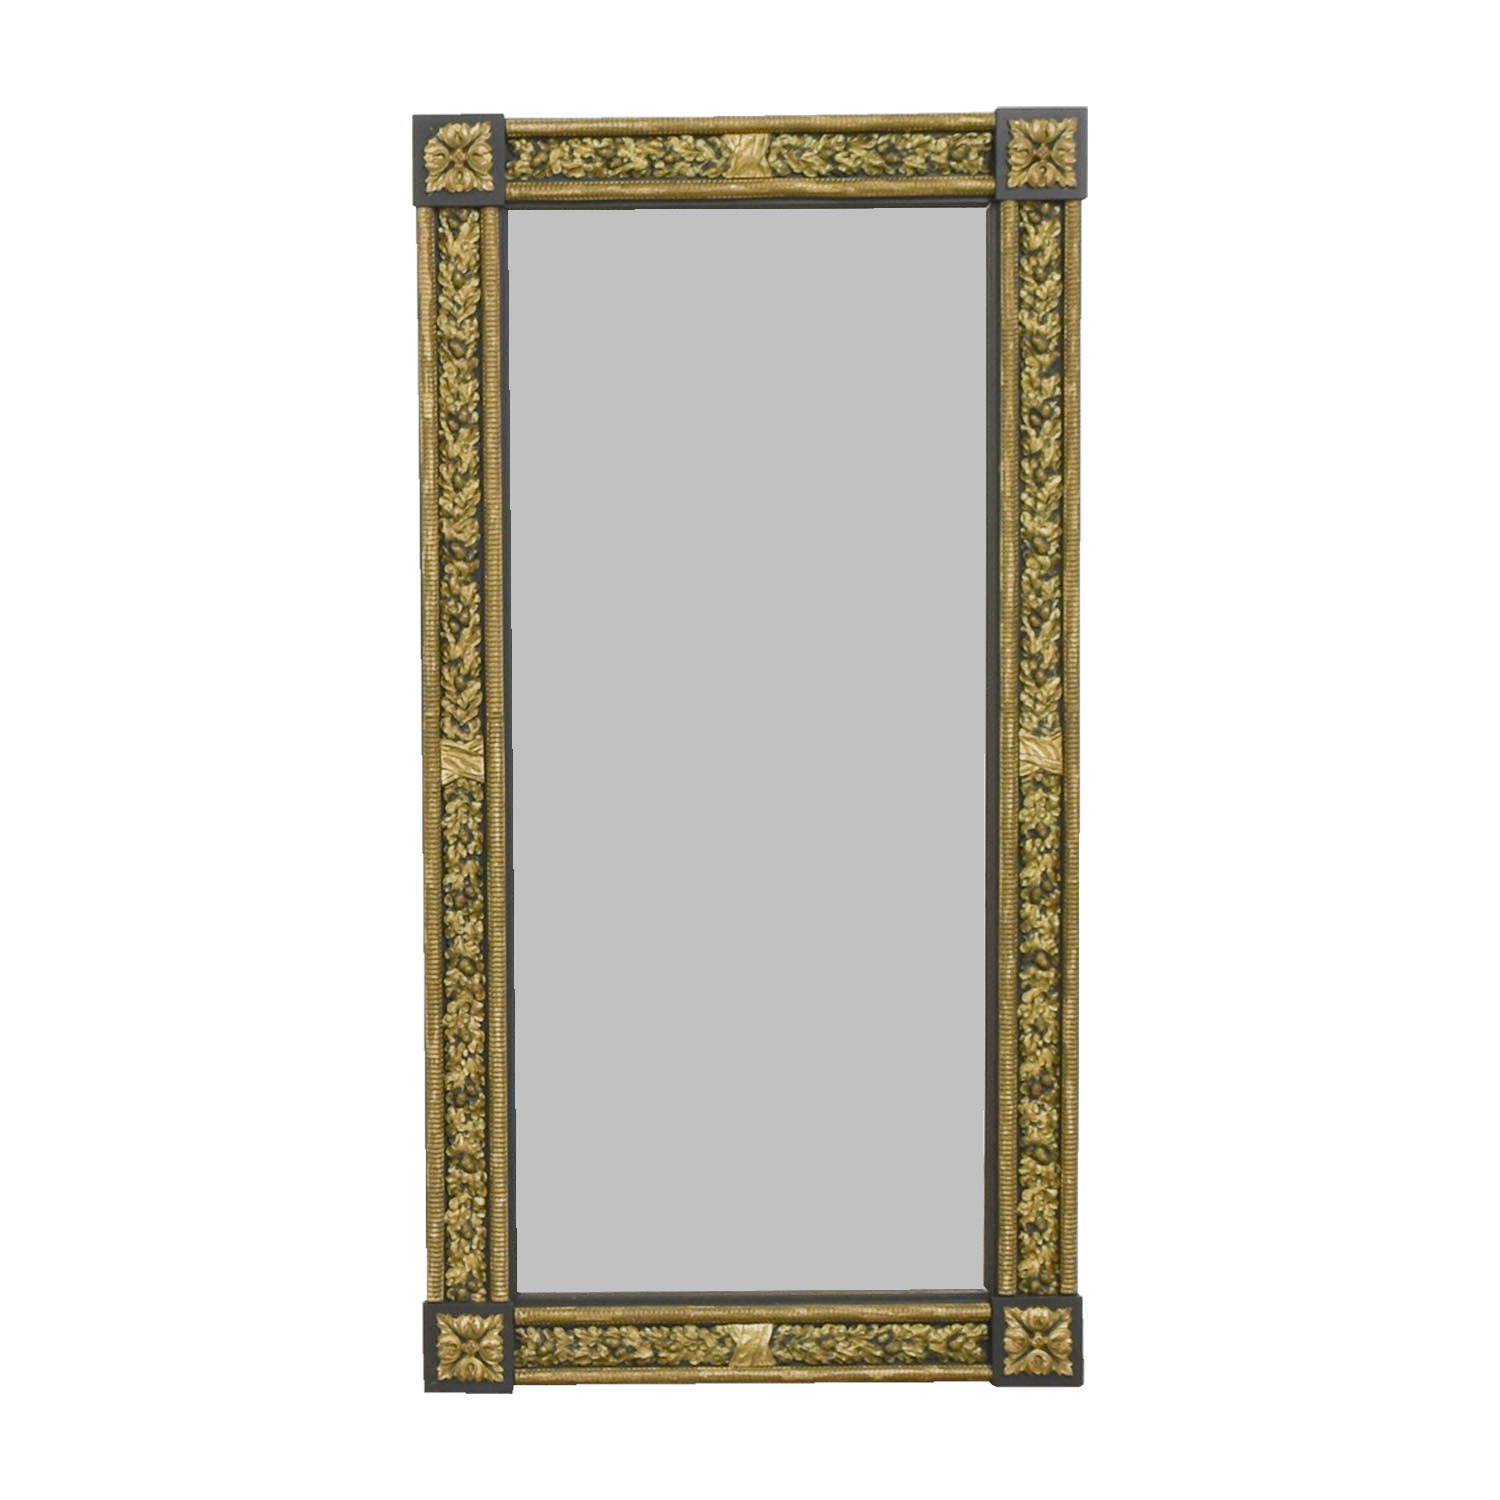 buy Gold and Silver Framed Wall Mirror